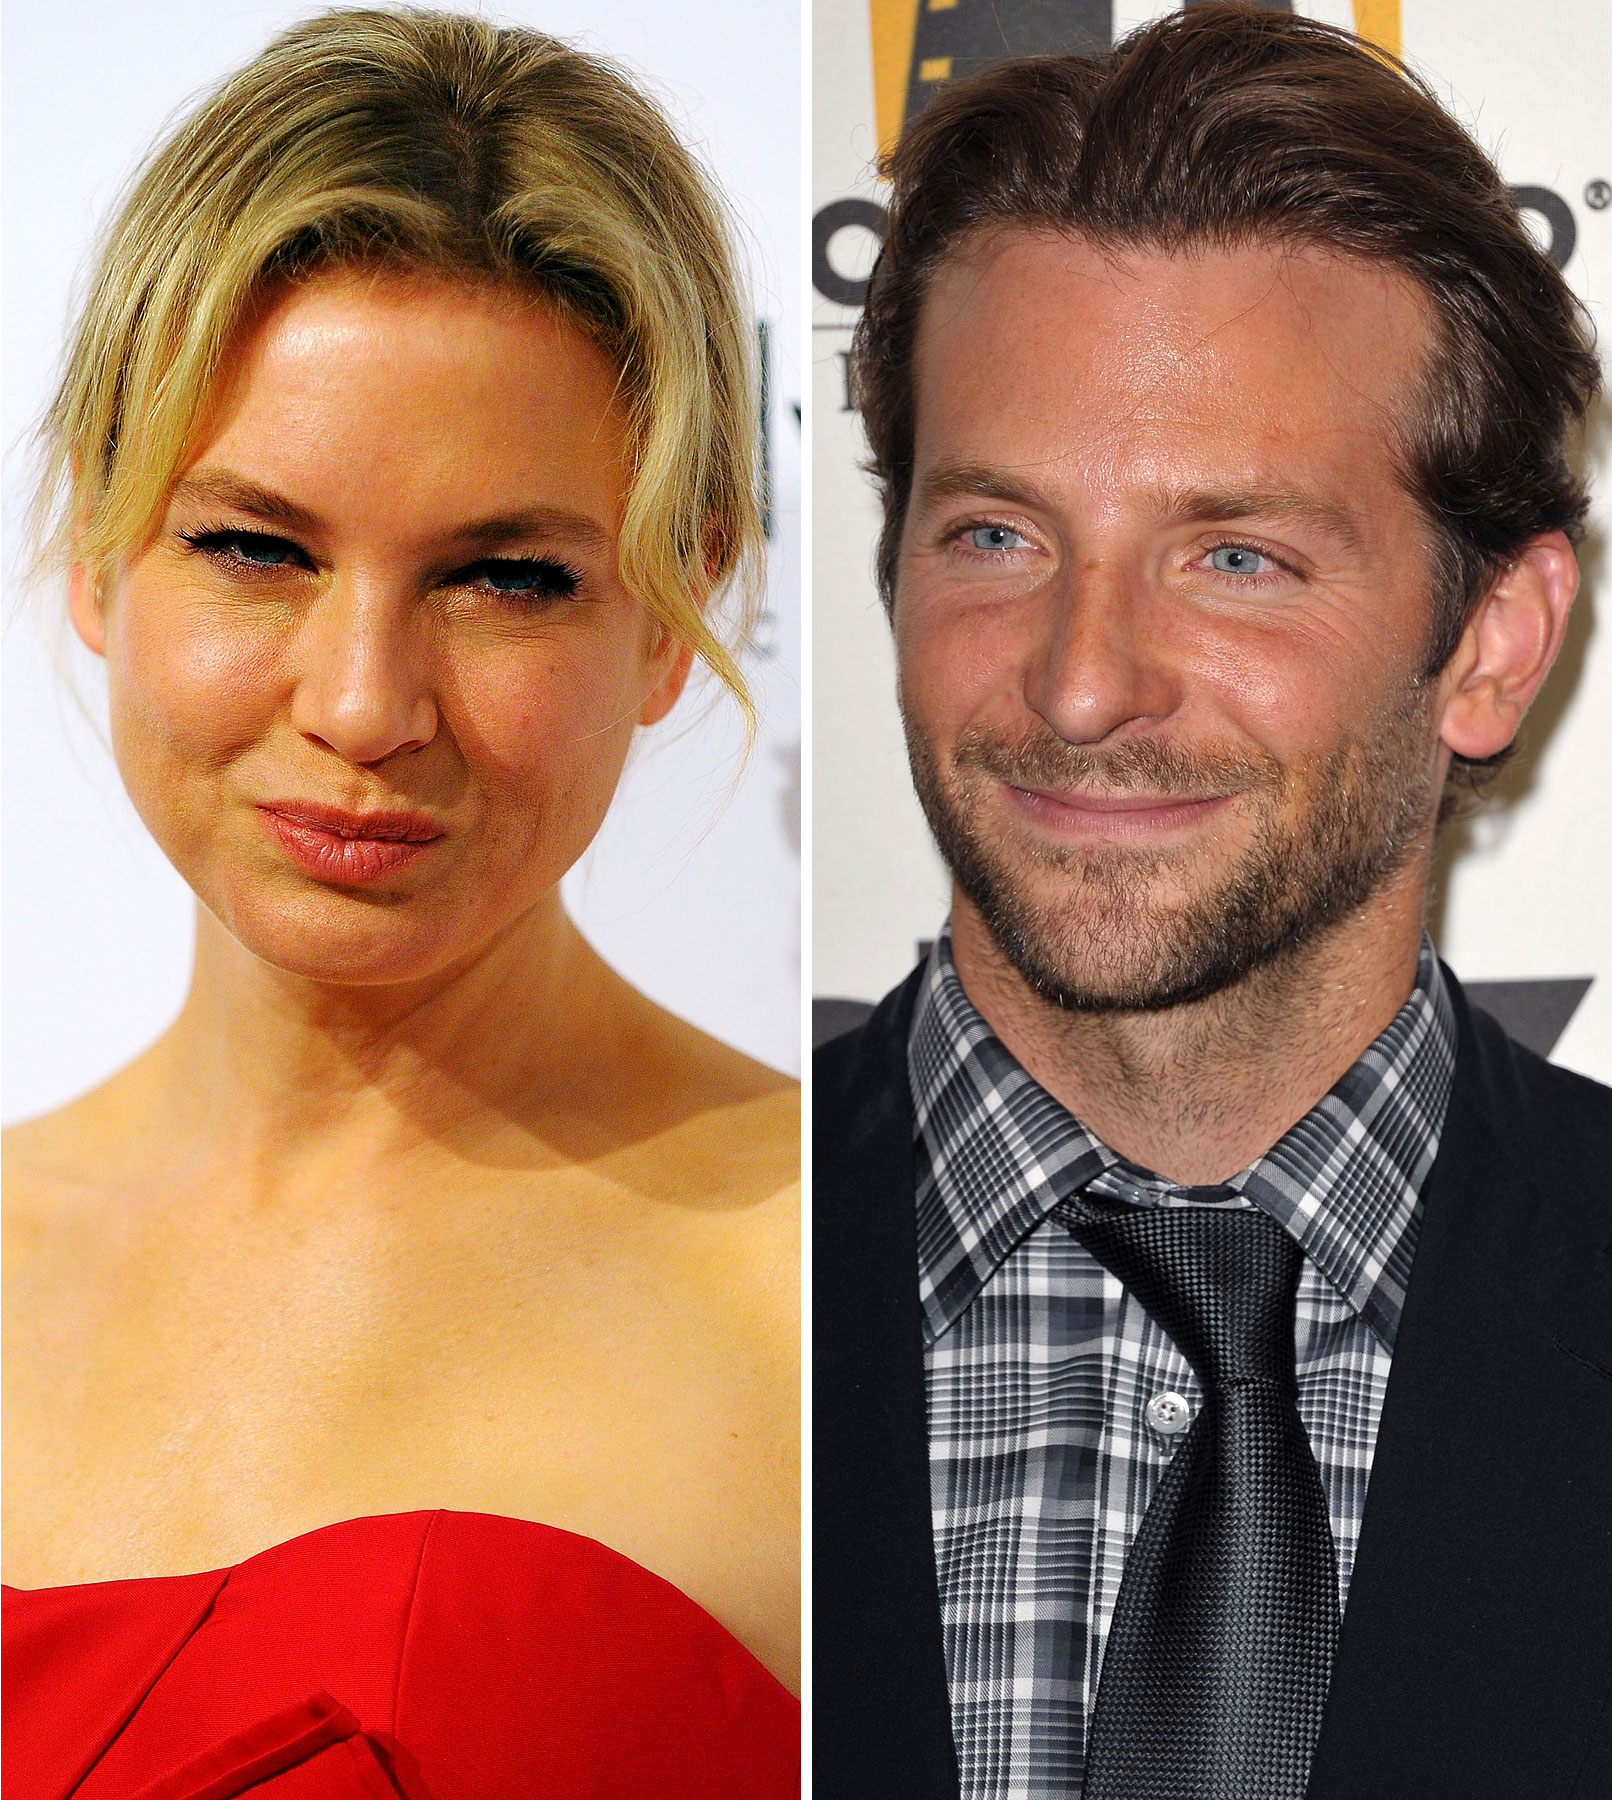 Humpday Roundup: Bradley Cooper and Renee Zellweger — Are They or Aren't They?